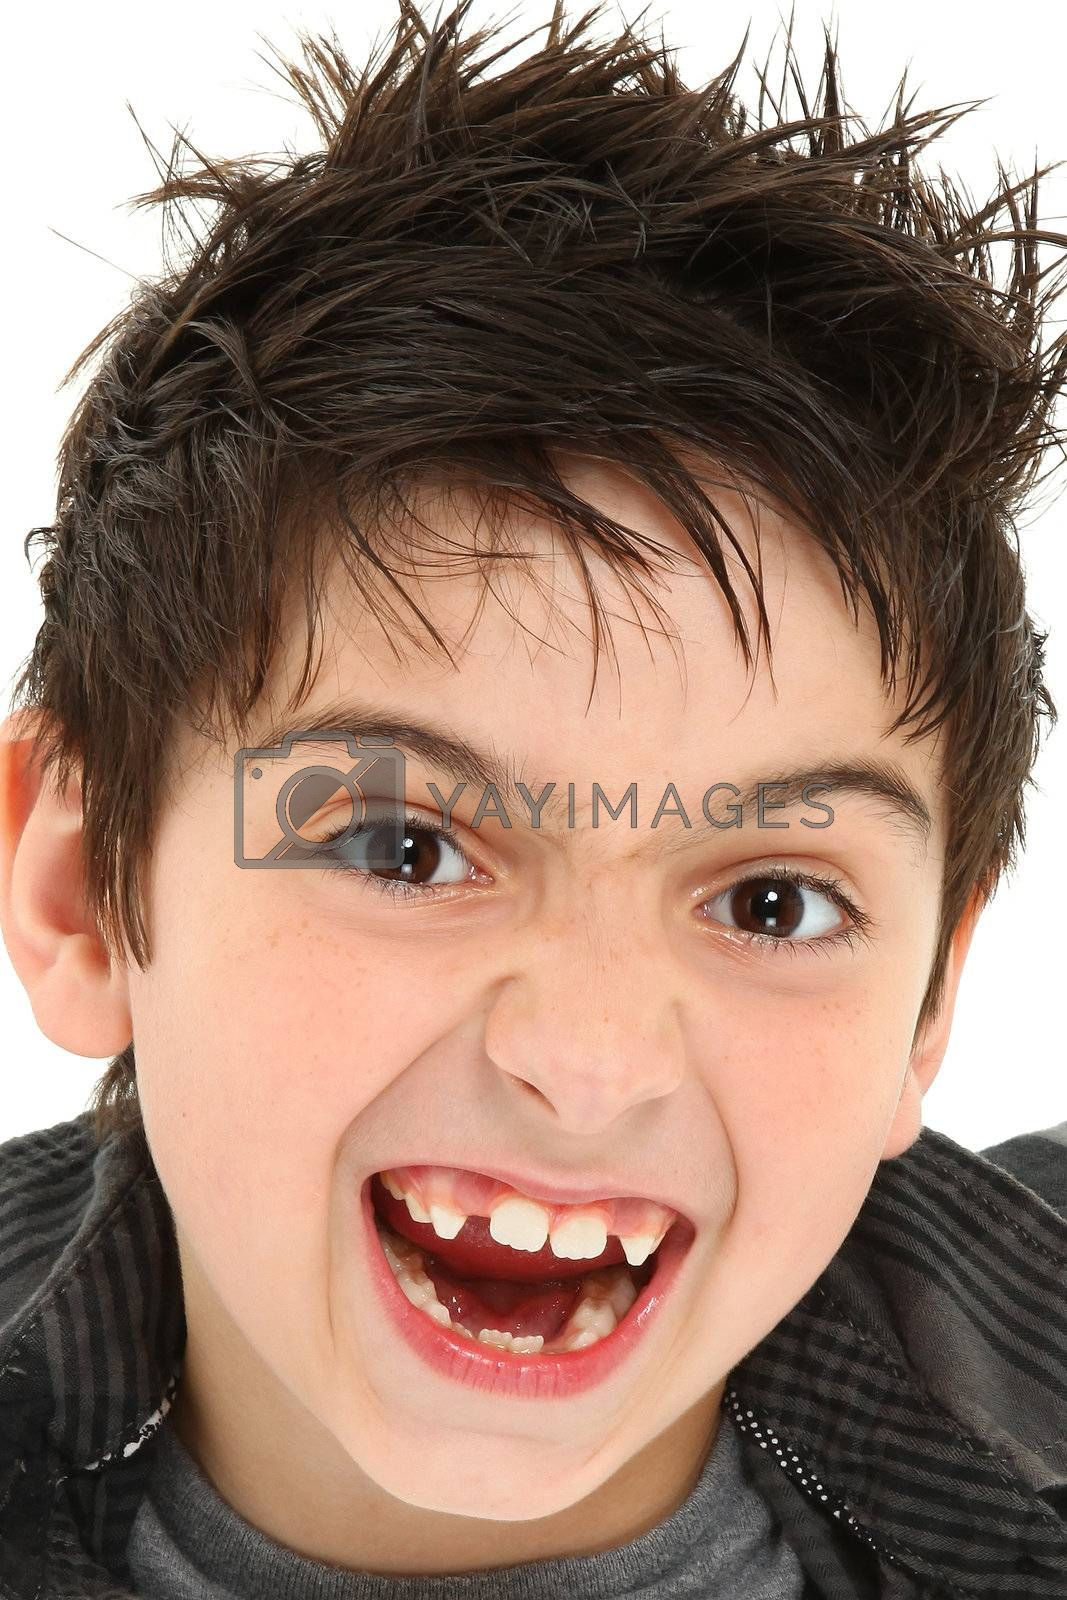 Hilarious 8 year old boy making crazy face up close.